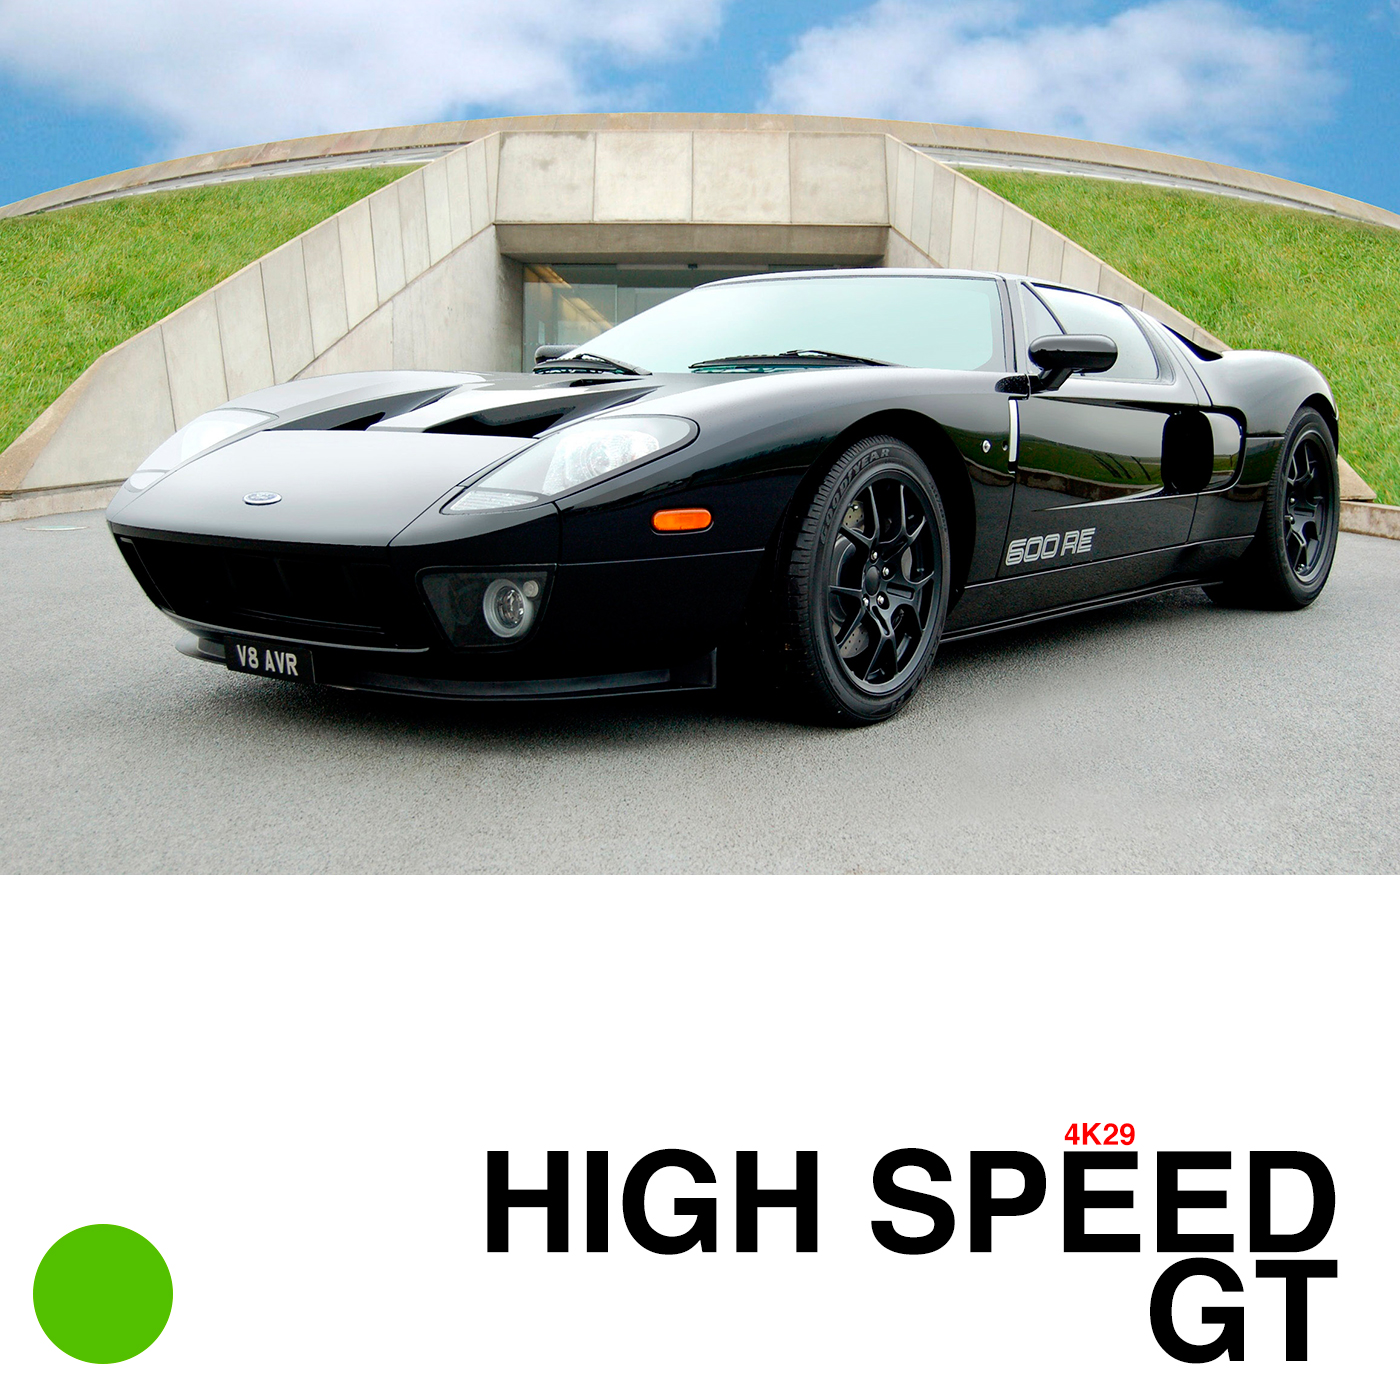 HIGH SPEED GT 4K29